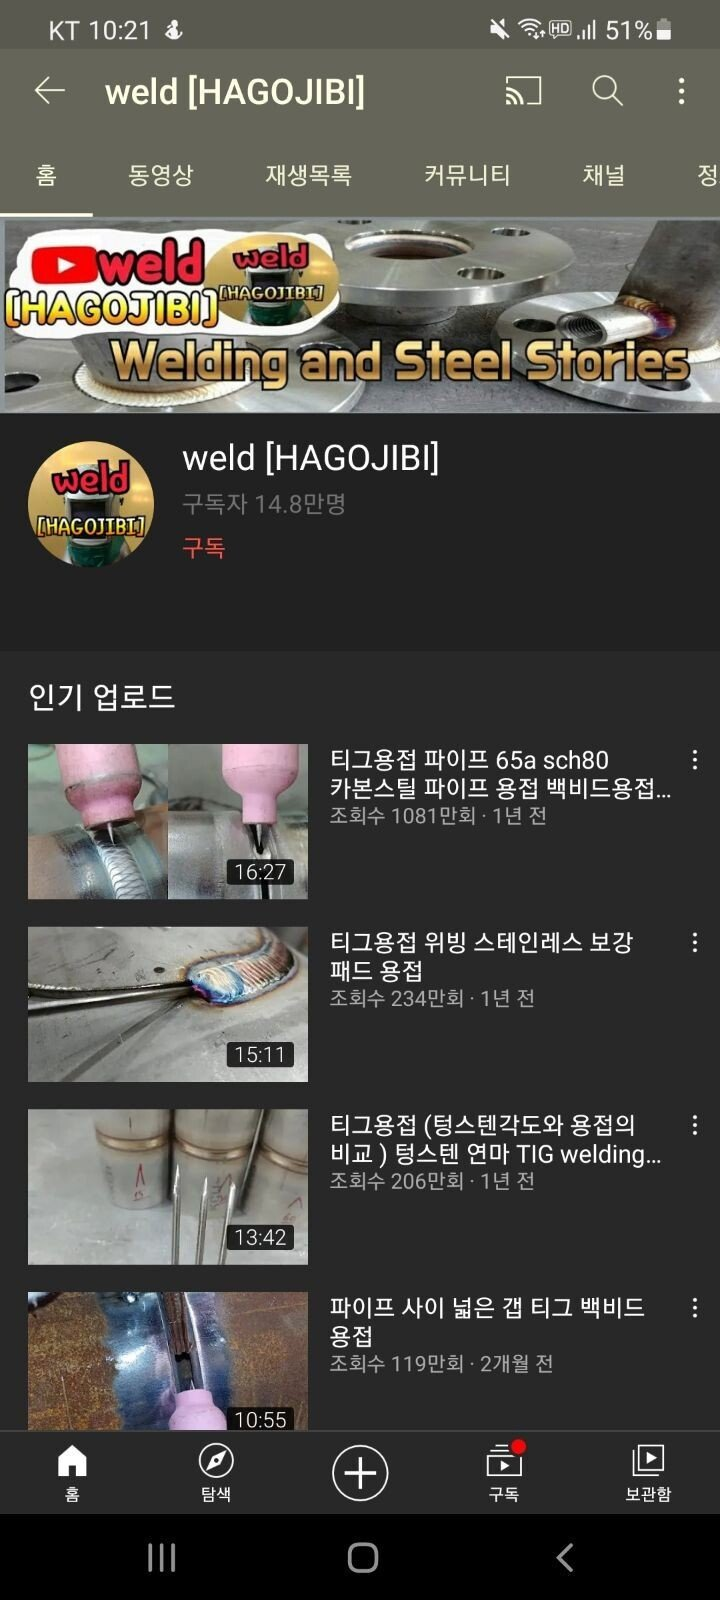 resized_Screenshot_20210301-102159_YouTube.jpg 한국의 용접 유투버 근황.......jpg